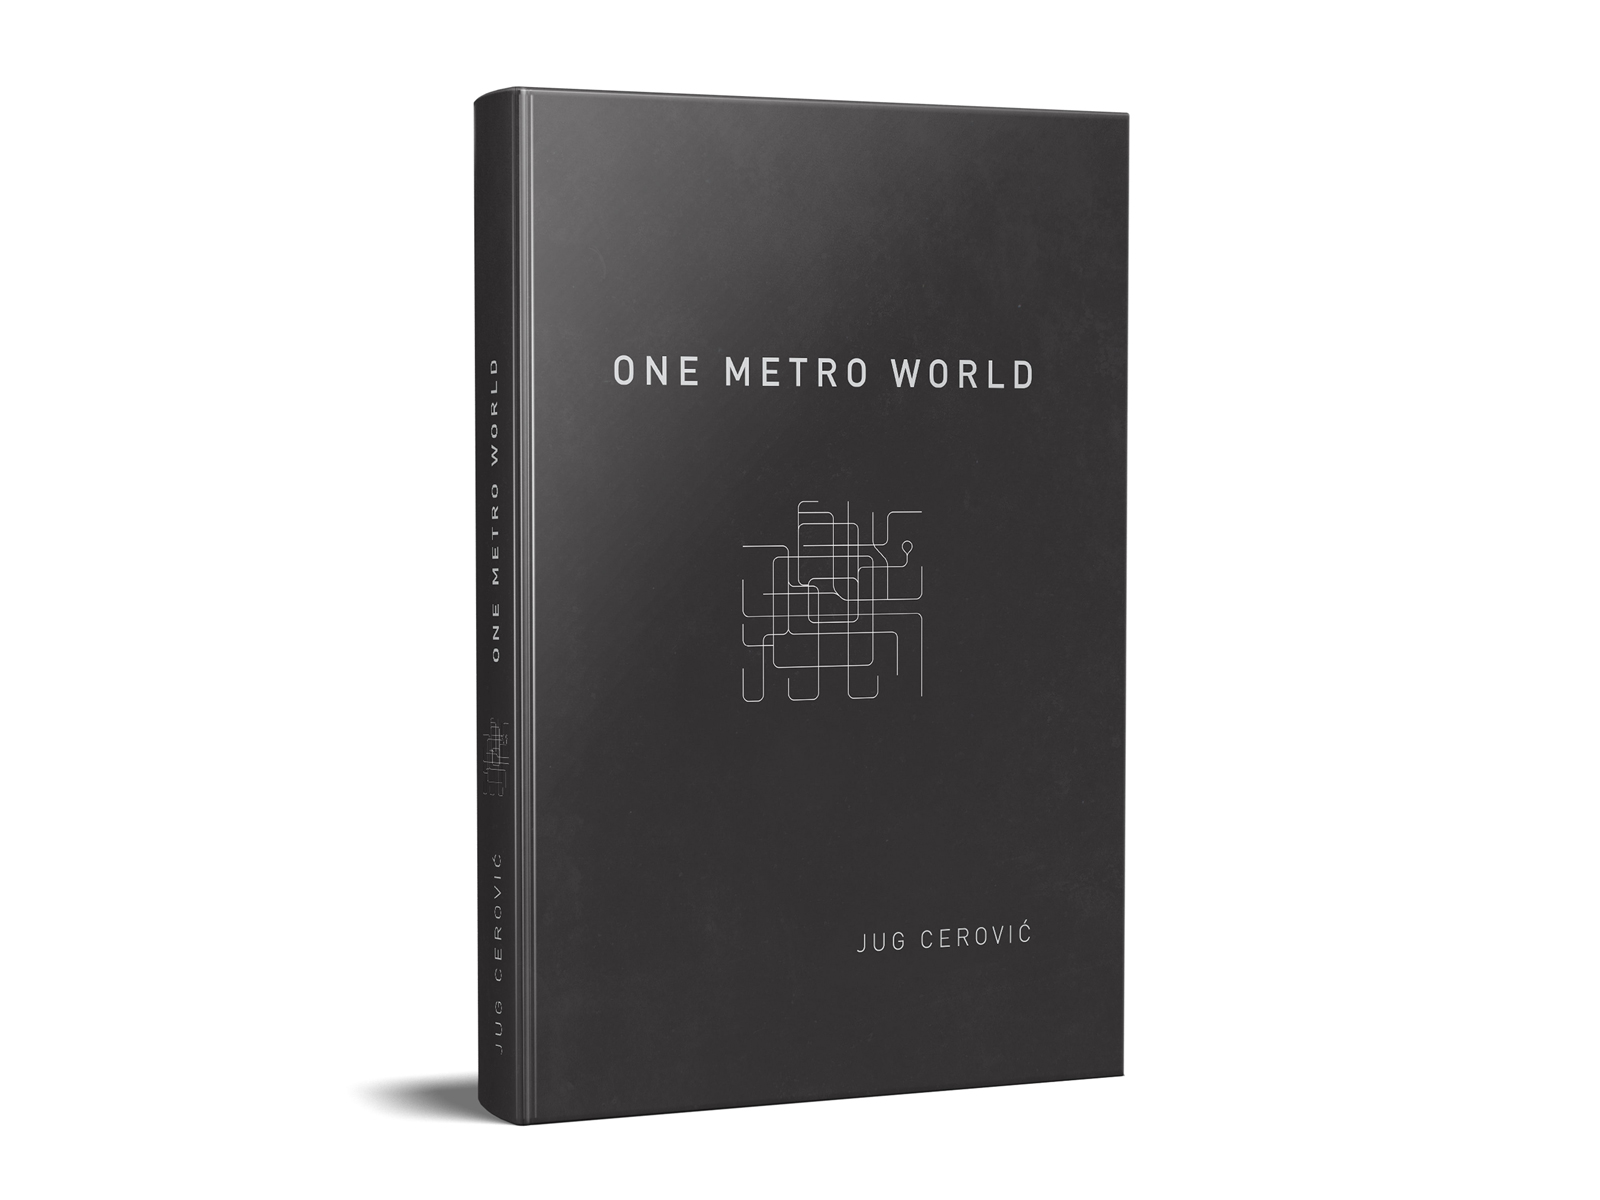 One Metro World book